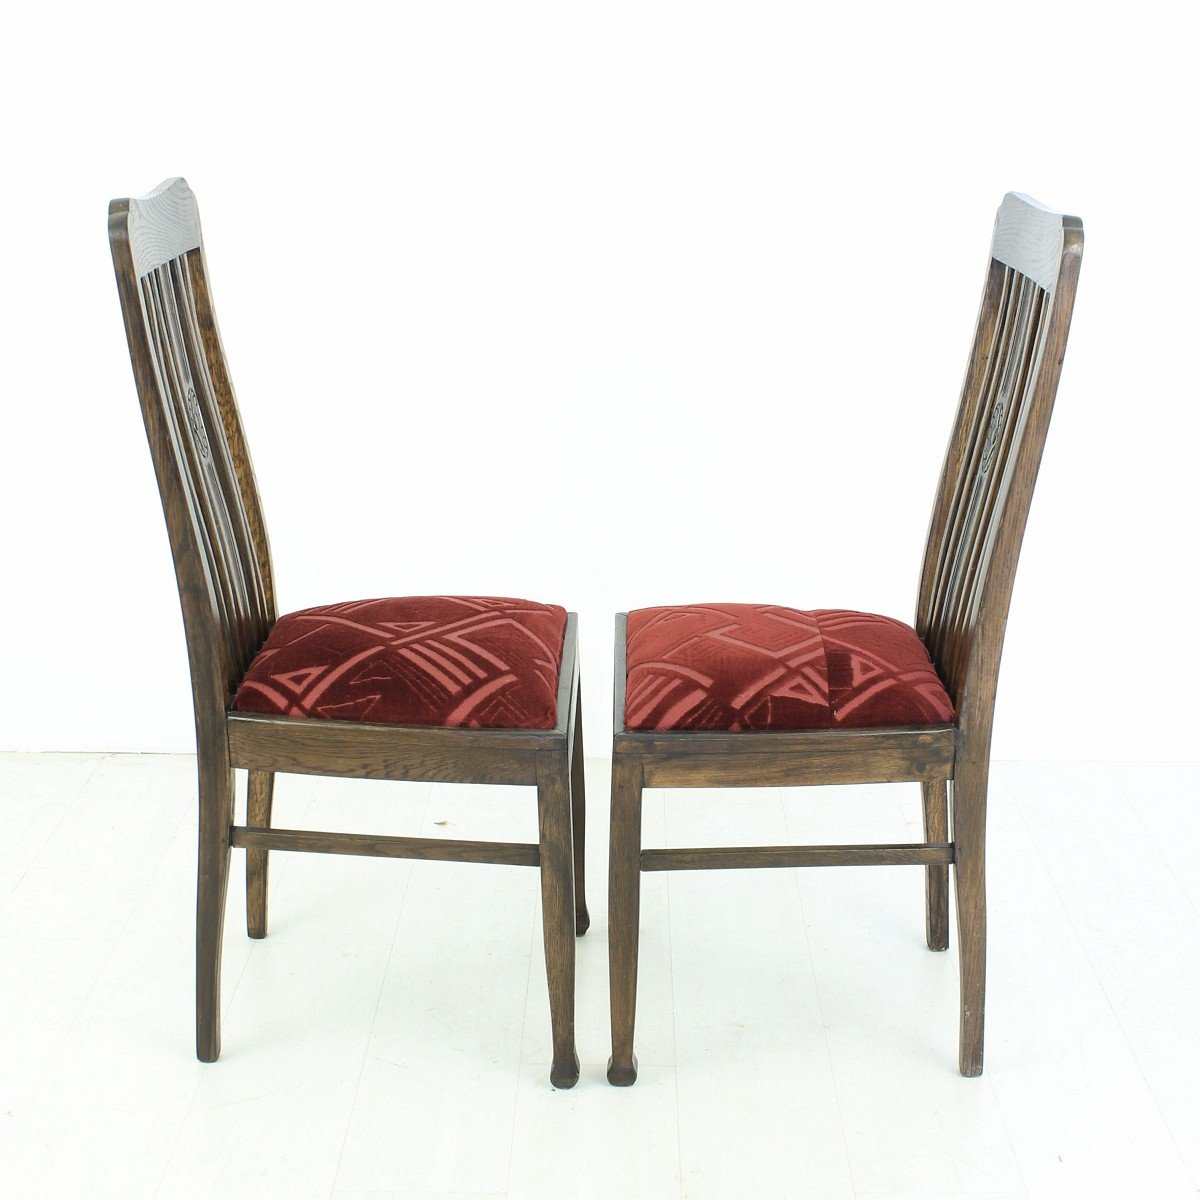 Vintage oak dining chairs 1920s set of 2 for sale at pamono for Oak dining chairs